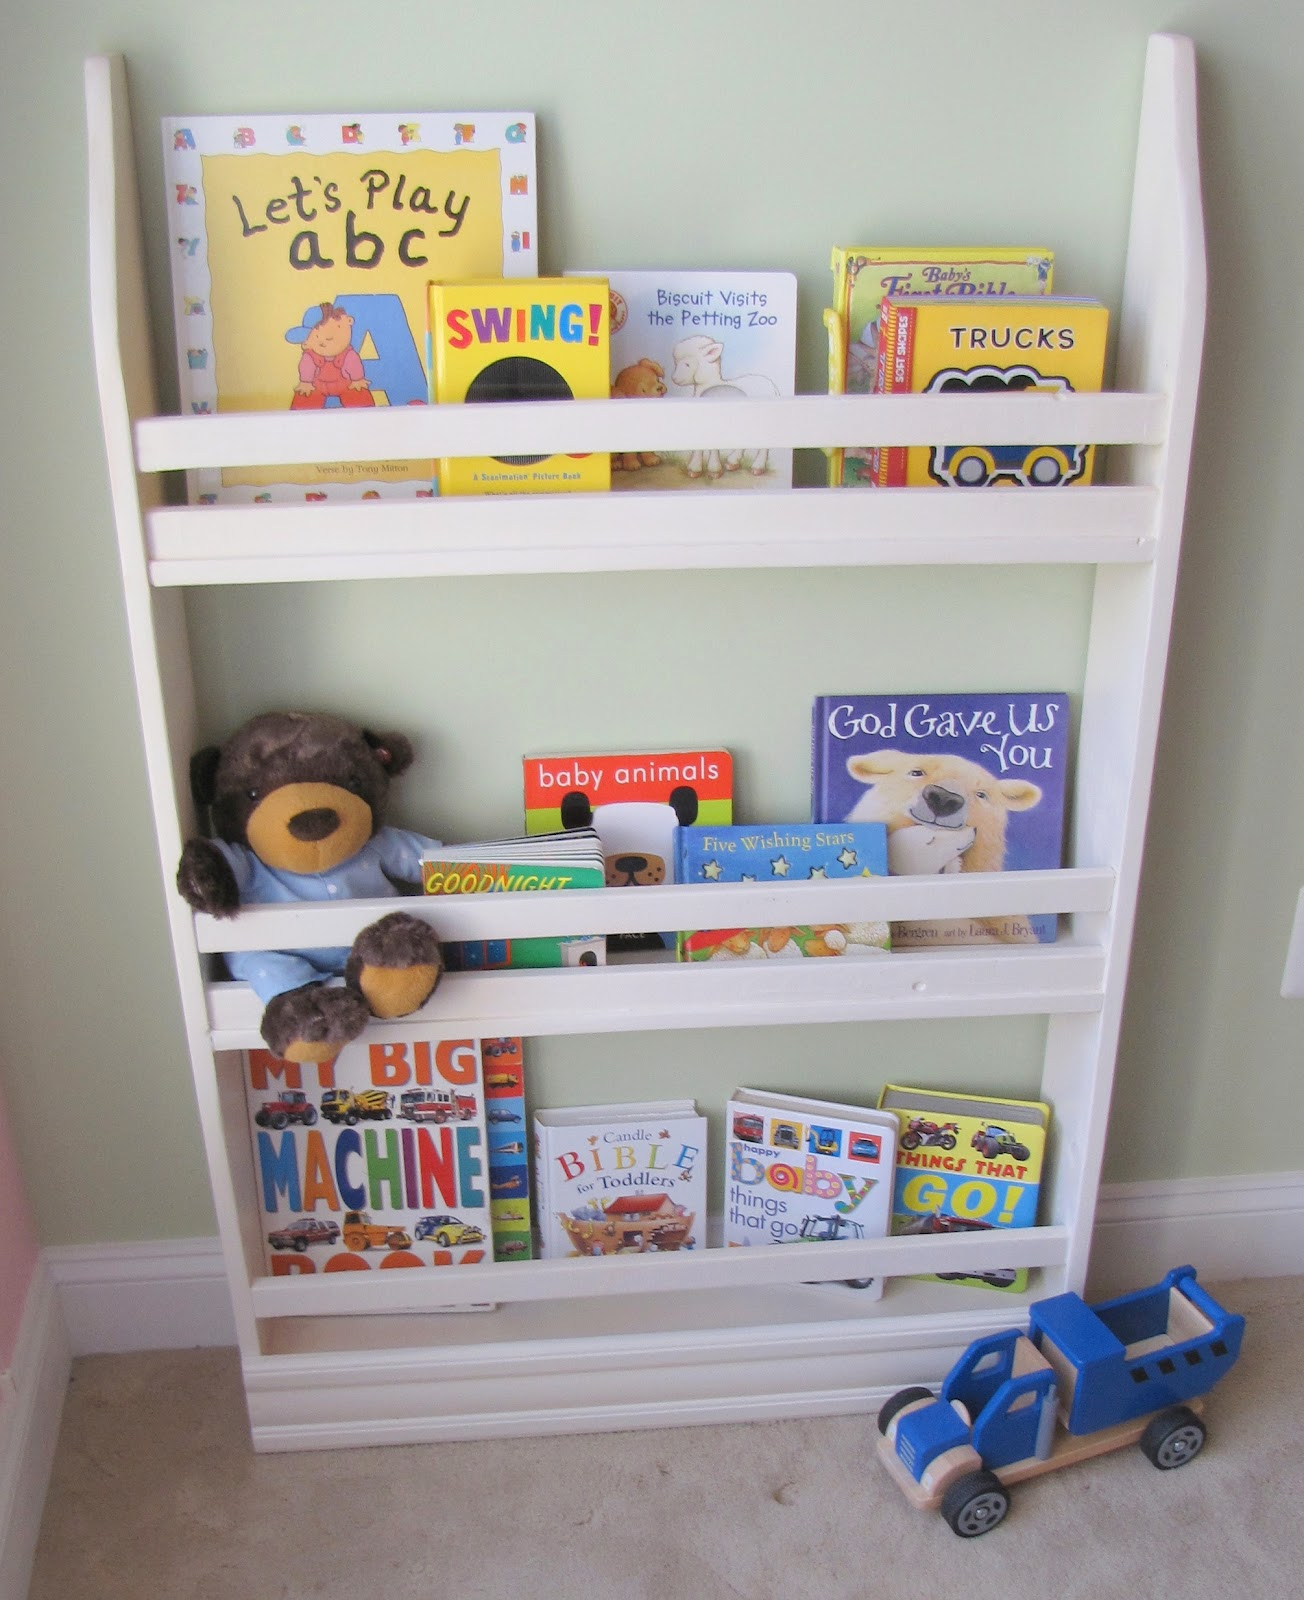 Childrens Bookshelves Idi Design - Image Collection Childrens Book Shelf - All Can Download ALL Guide